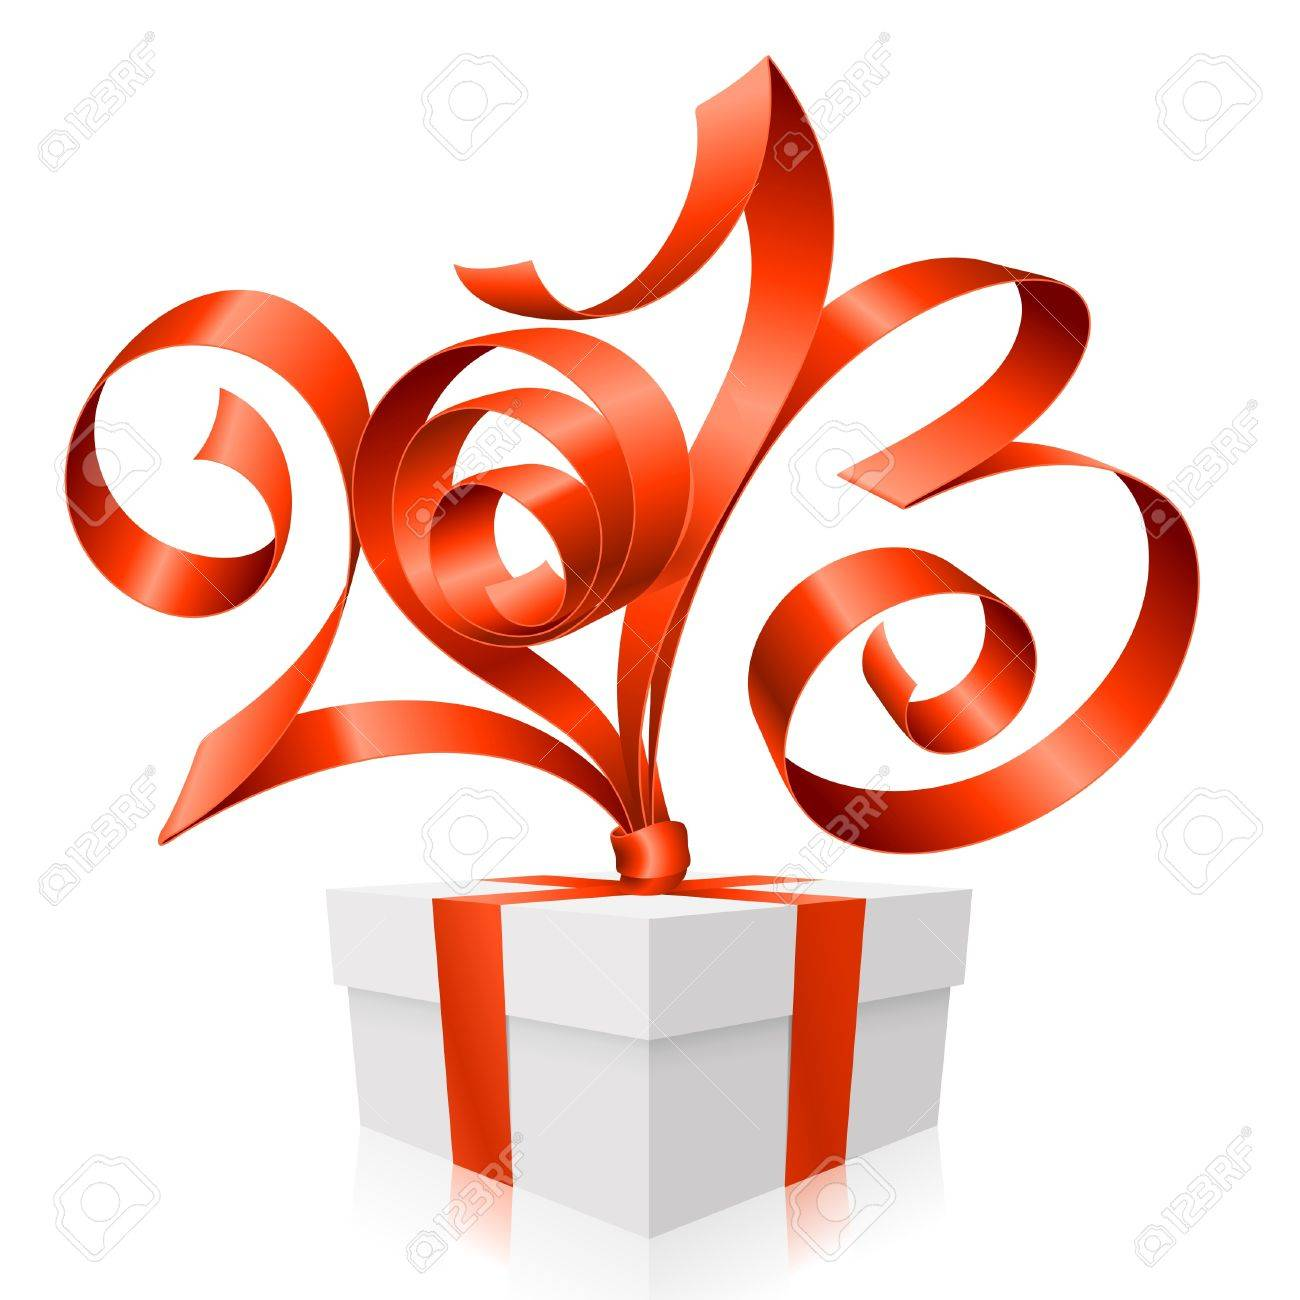 Vector red ribbon in the shape of 2013 and gift box. Symbol of New Year Stock Vector - 16307829